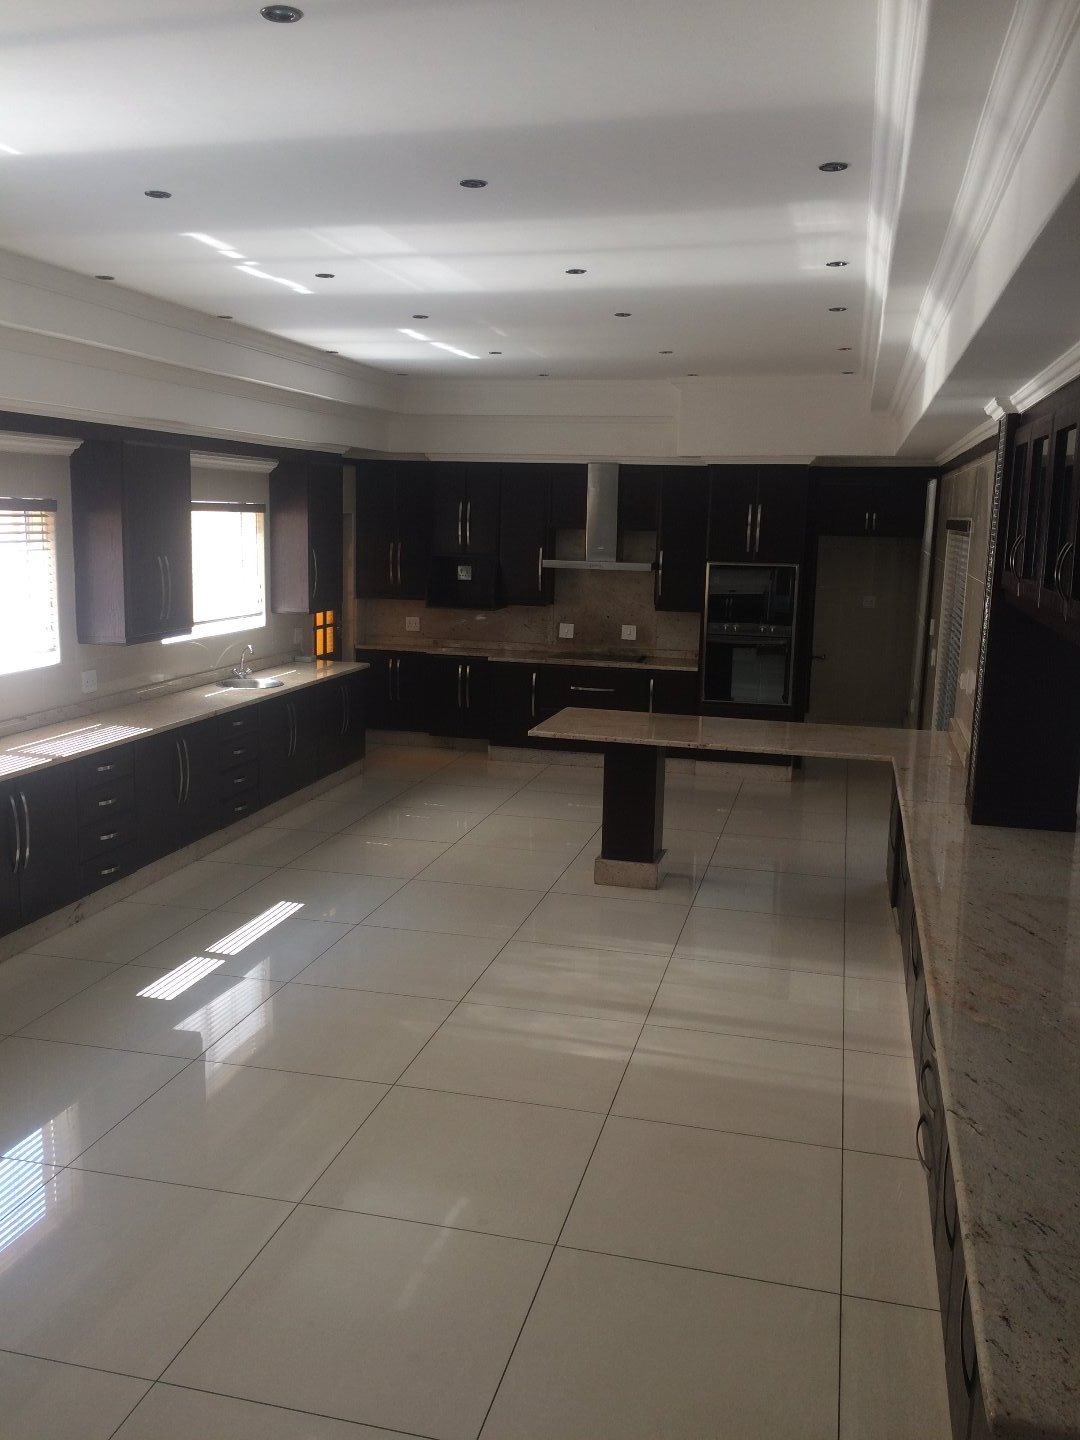 Meyersdal property to rent. Ref No: 13617379. Picture no 5